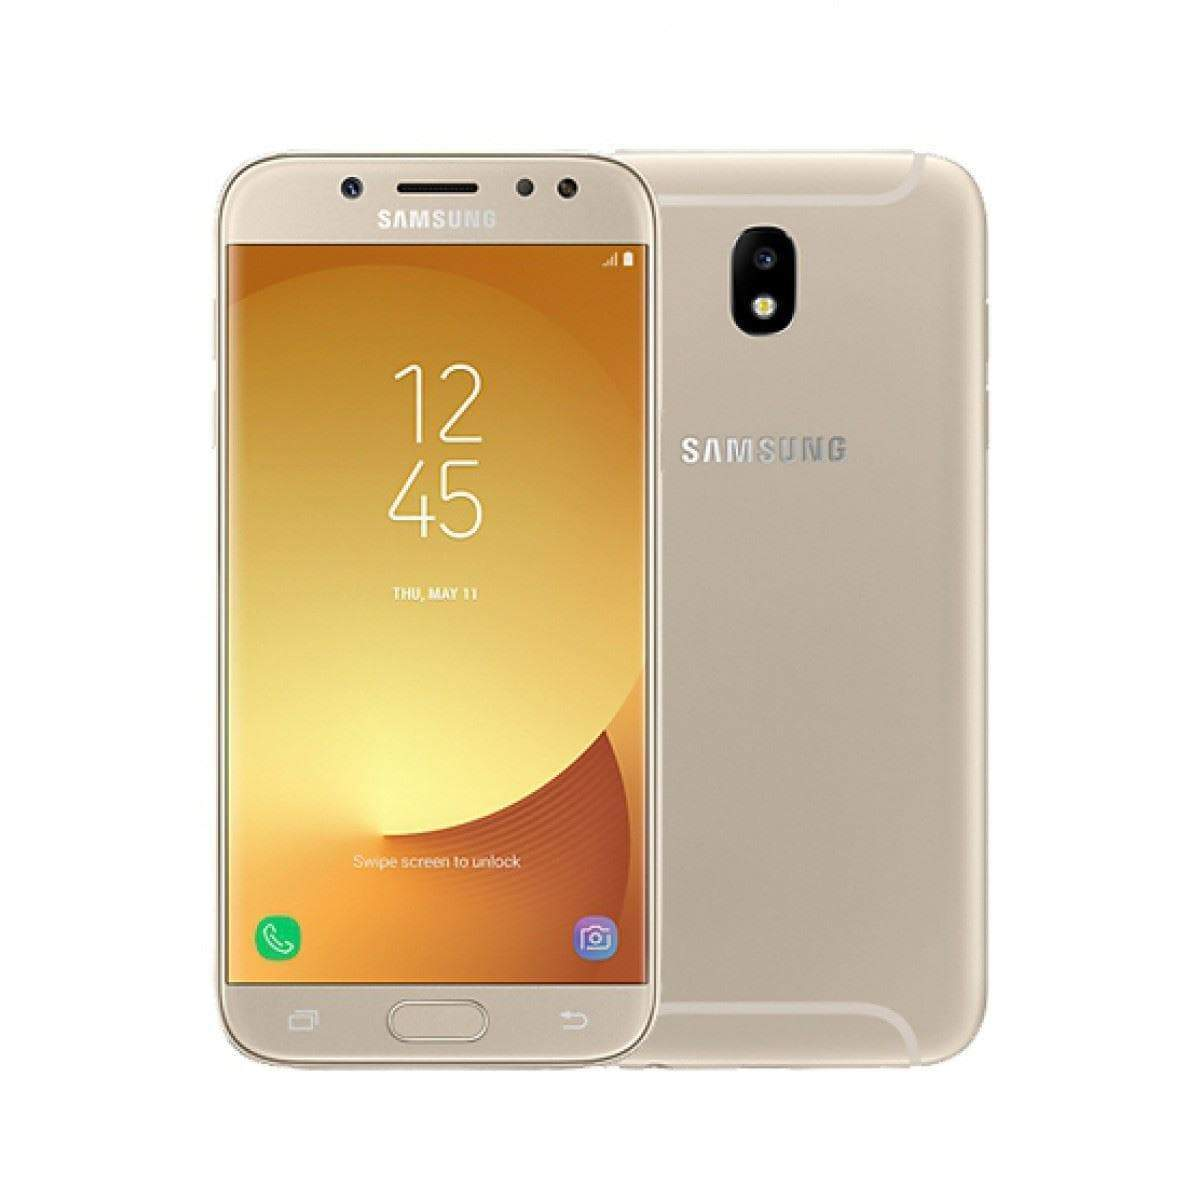 Samsung Galaxy J5 (2017) 16GB, Gold Unlocked - Refurbished Excellent